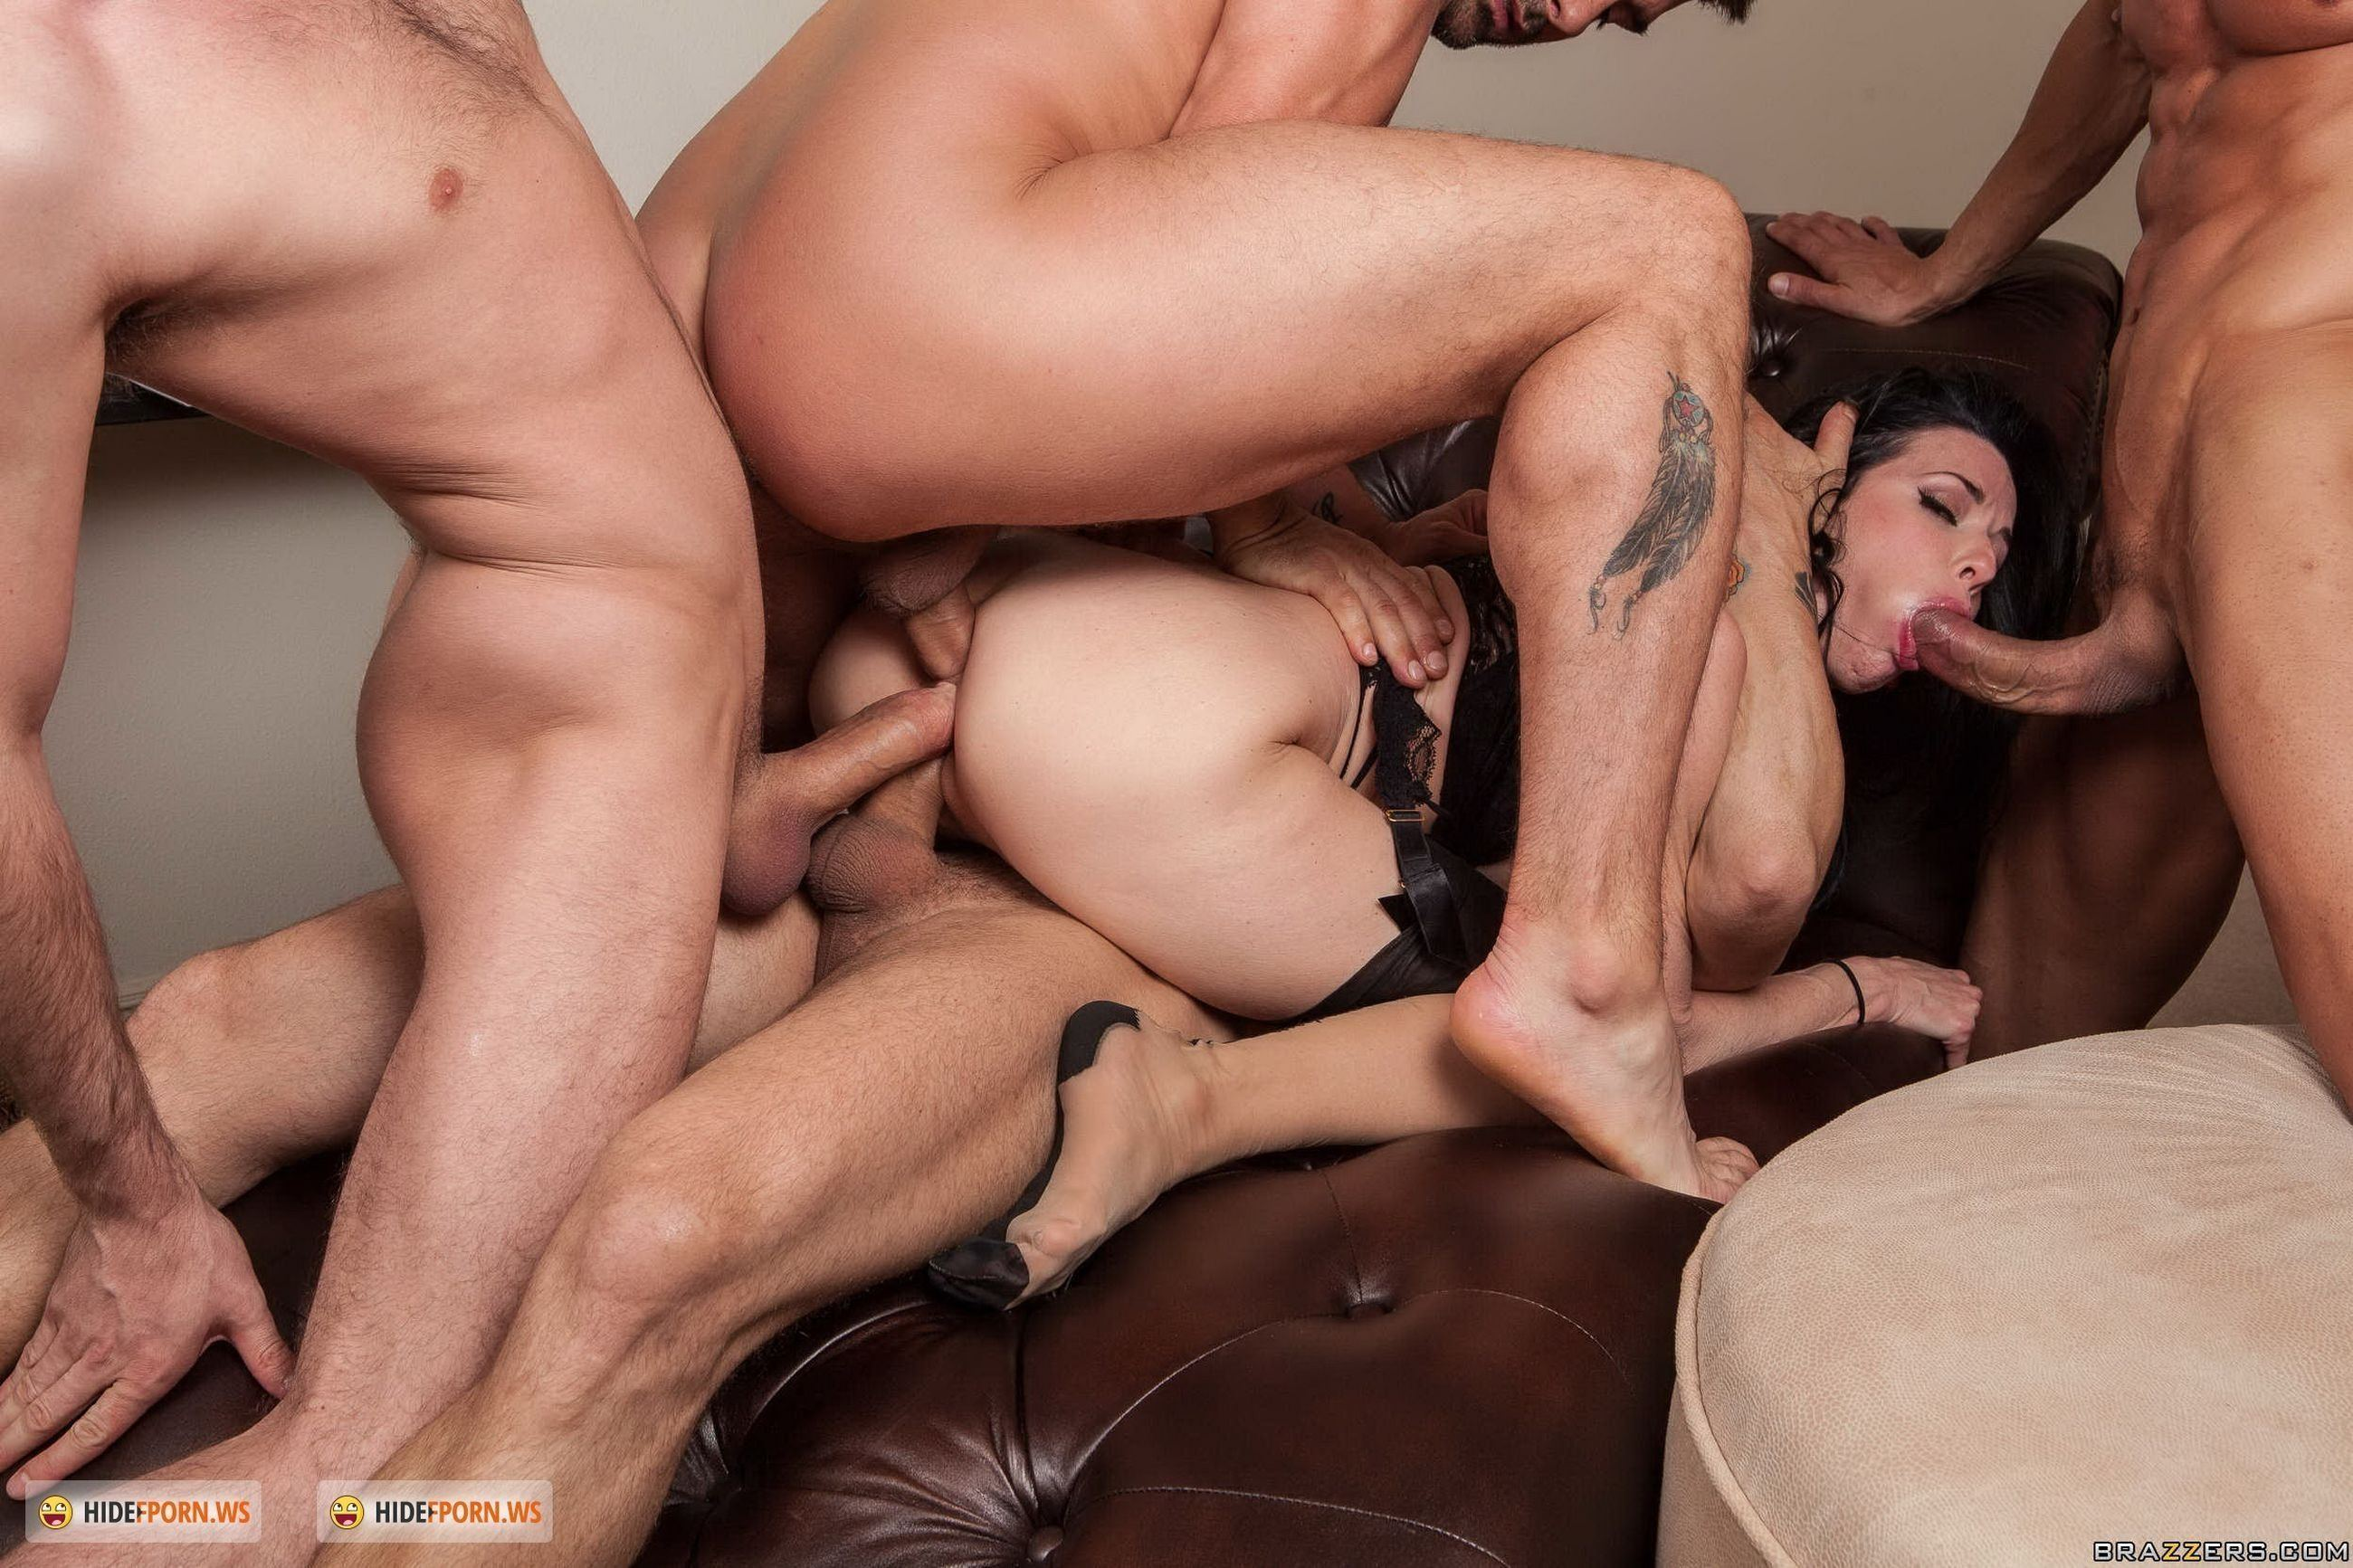 Gang bang my ass hole porn archive